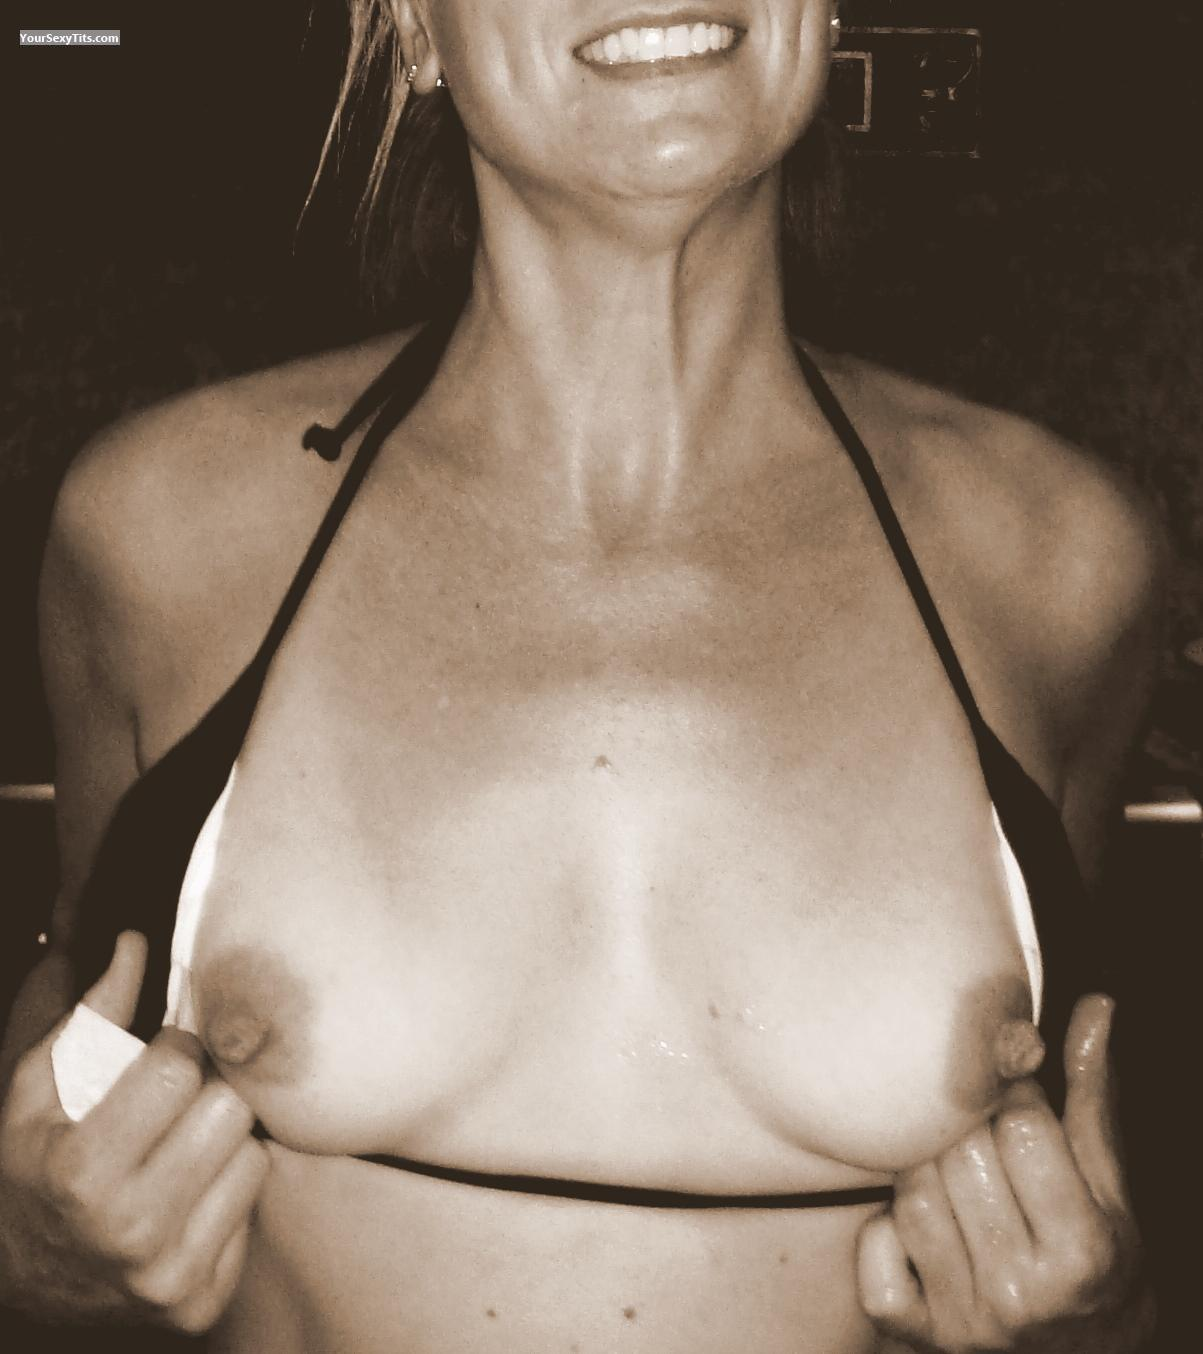 Tit Flash: Medium Tits - Sue72 from United States